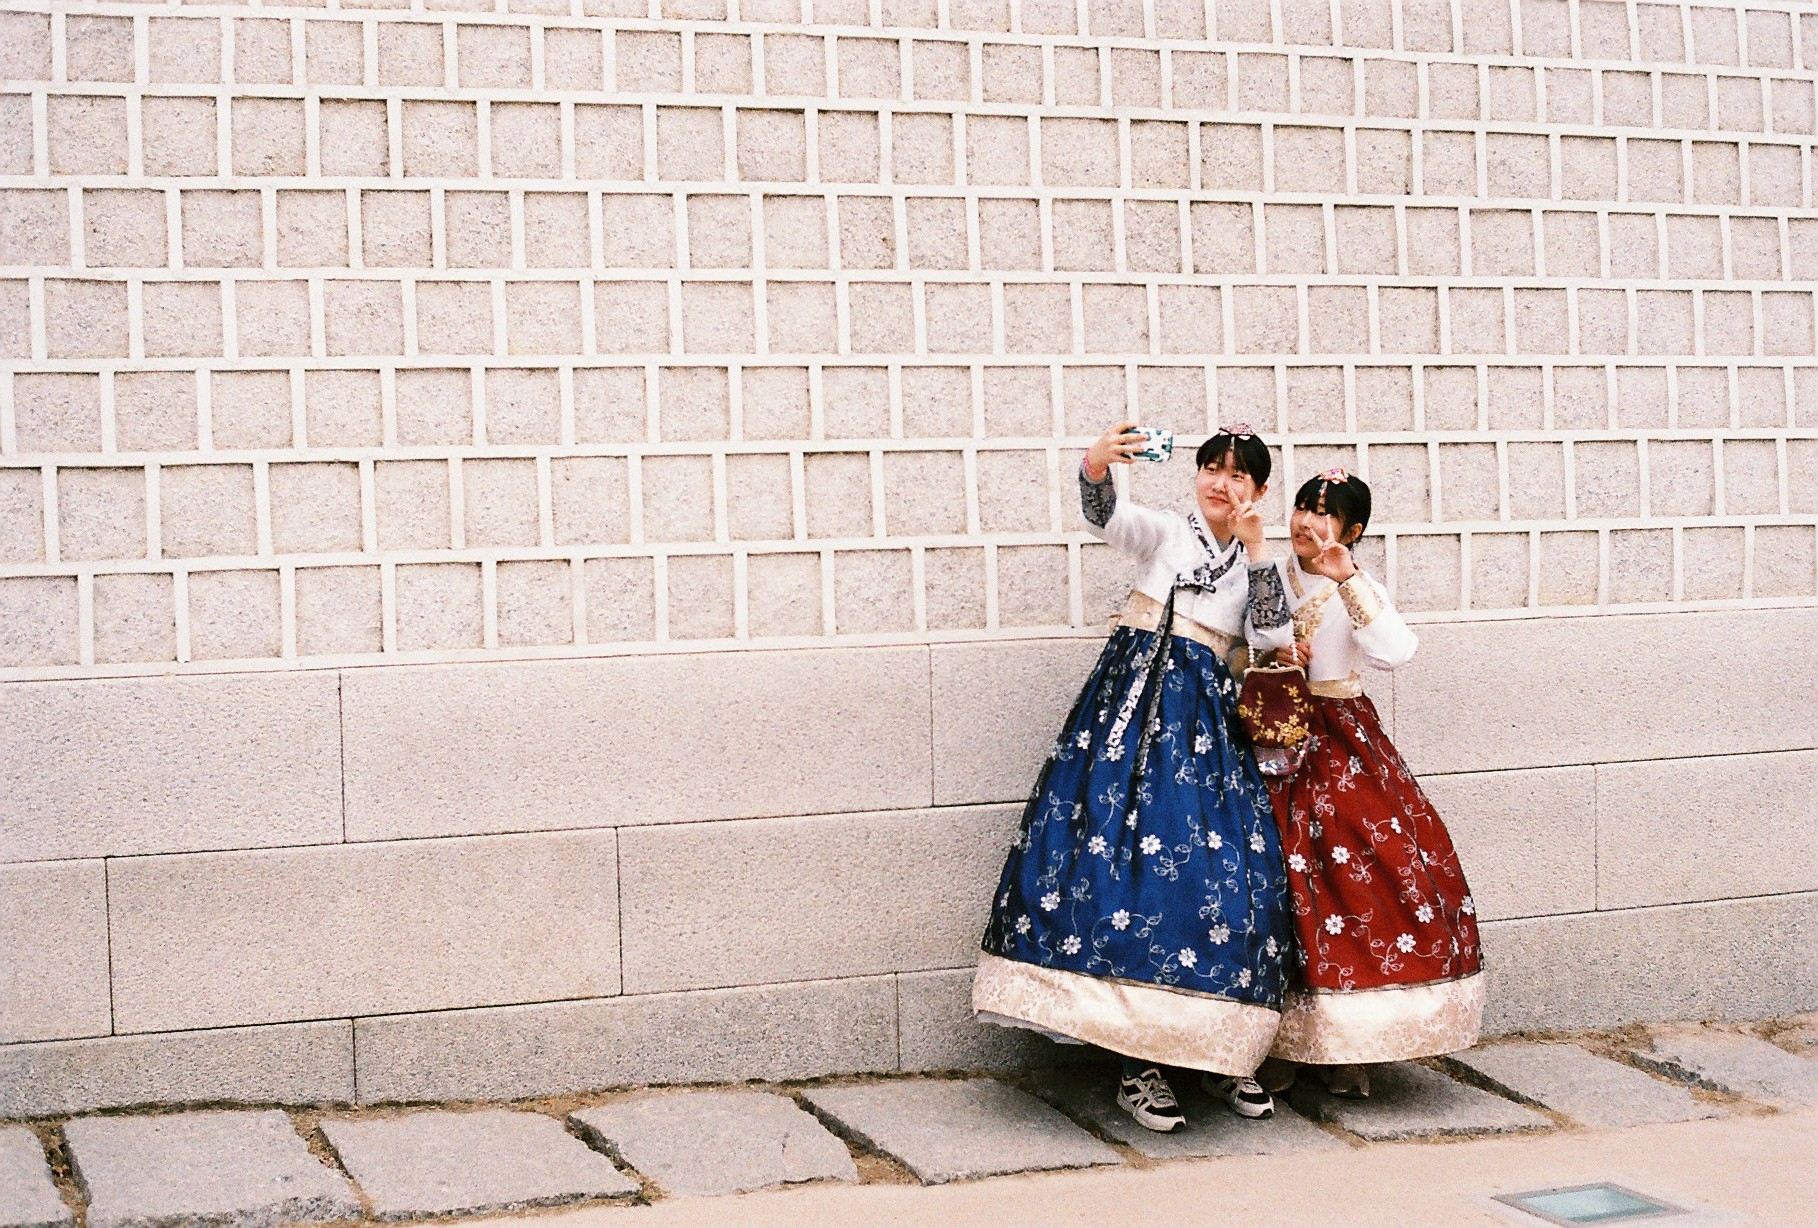 Young Korean Girls